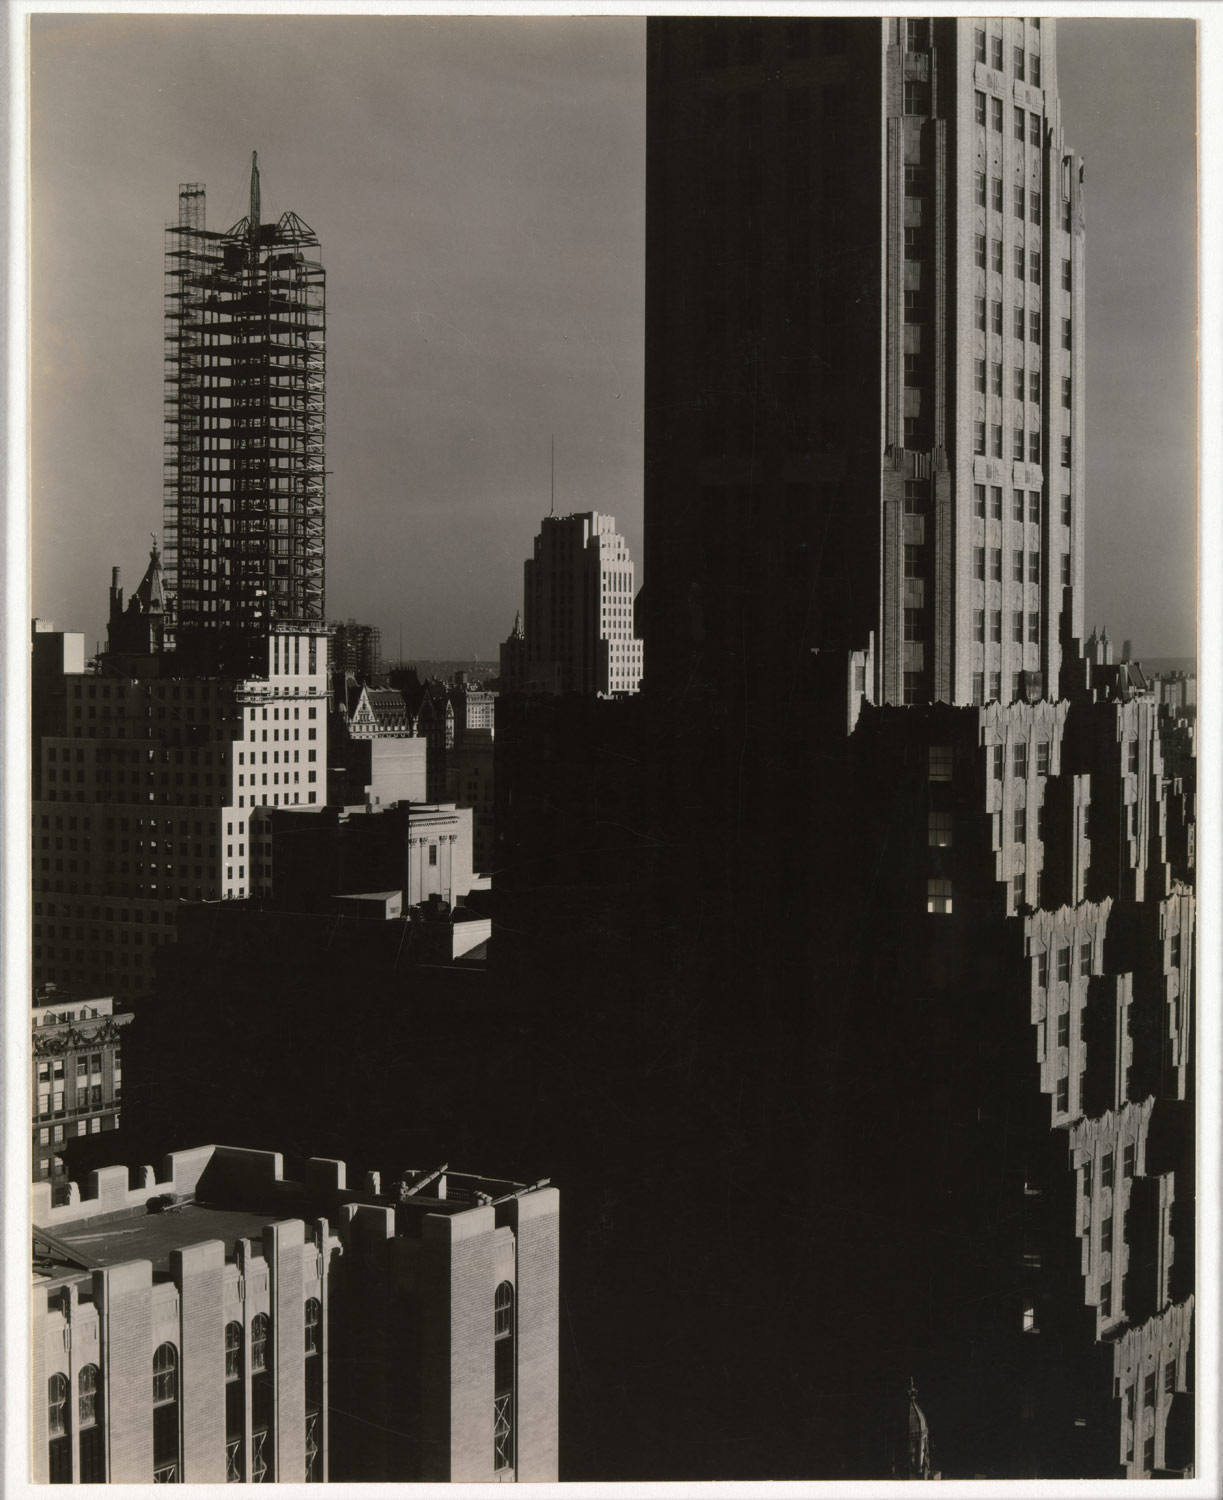 alfred stieglitz and american photography essay from my window at the shelton